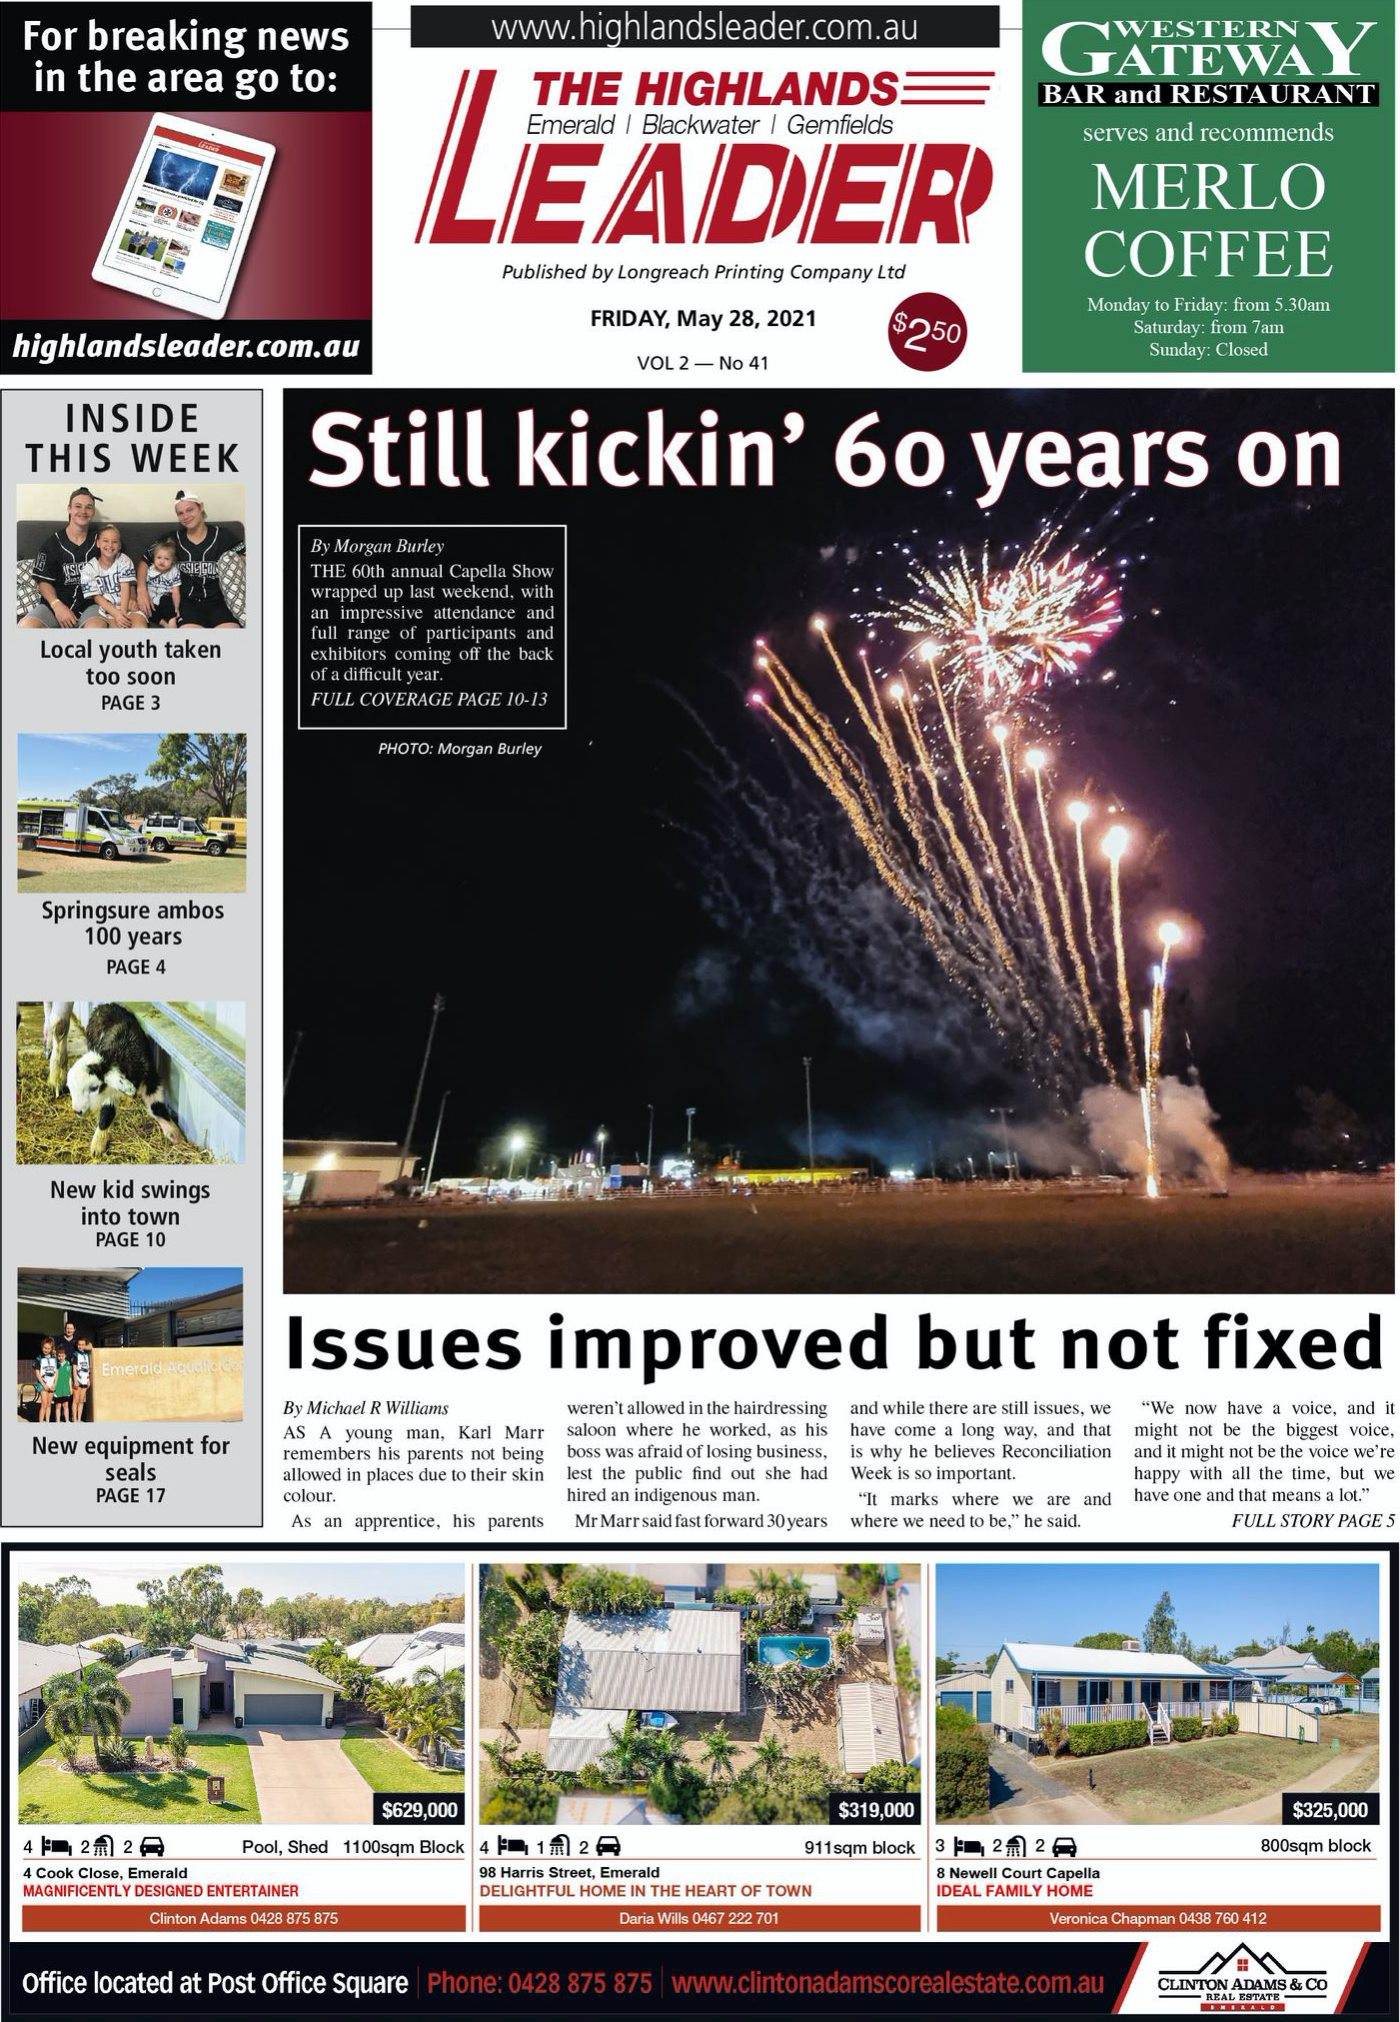 May be an image of standing, fireworks and text that says 'For breaking news in the area go to: GATEWA BAR RESTA serves sandreco recommends MERLO COFFEE from 30am THE HIGHLANDS LEADER Emerald Blackwater Gemfields ۔ Longreach Printing Company Ltd FRIDAY, May 2021 highlandsleader.com.au VOL2-No41 INSIDE THIS WEEK Still kickin' 60 years on Sunday Loca youth taken too PAE3 Springsure 100years PAE4 New kid into PAE equipment PAE1 Marr Issues improved but not fixed Michael Williams where voice, haveo mea Emerald DESIGNED ENTERTAINER Block $319,000 DELIGHTFUL Office located HE Post Office Square Capella $325,000 800sqm VeronicaChapman0438760412 CLINTONADAMS&CO'